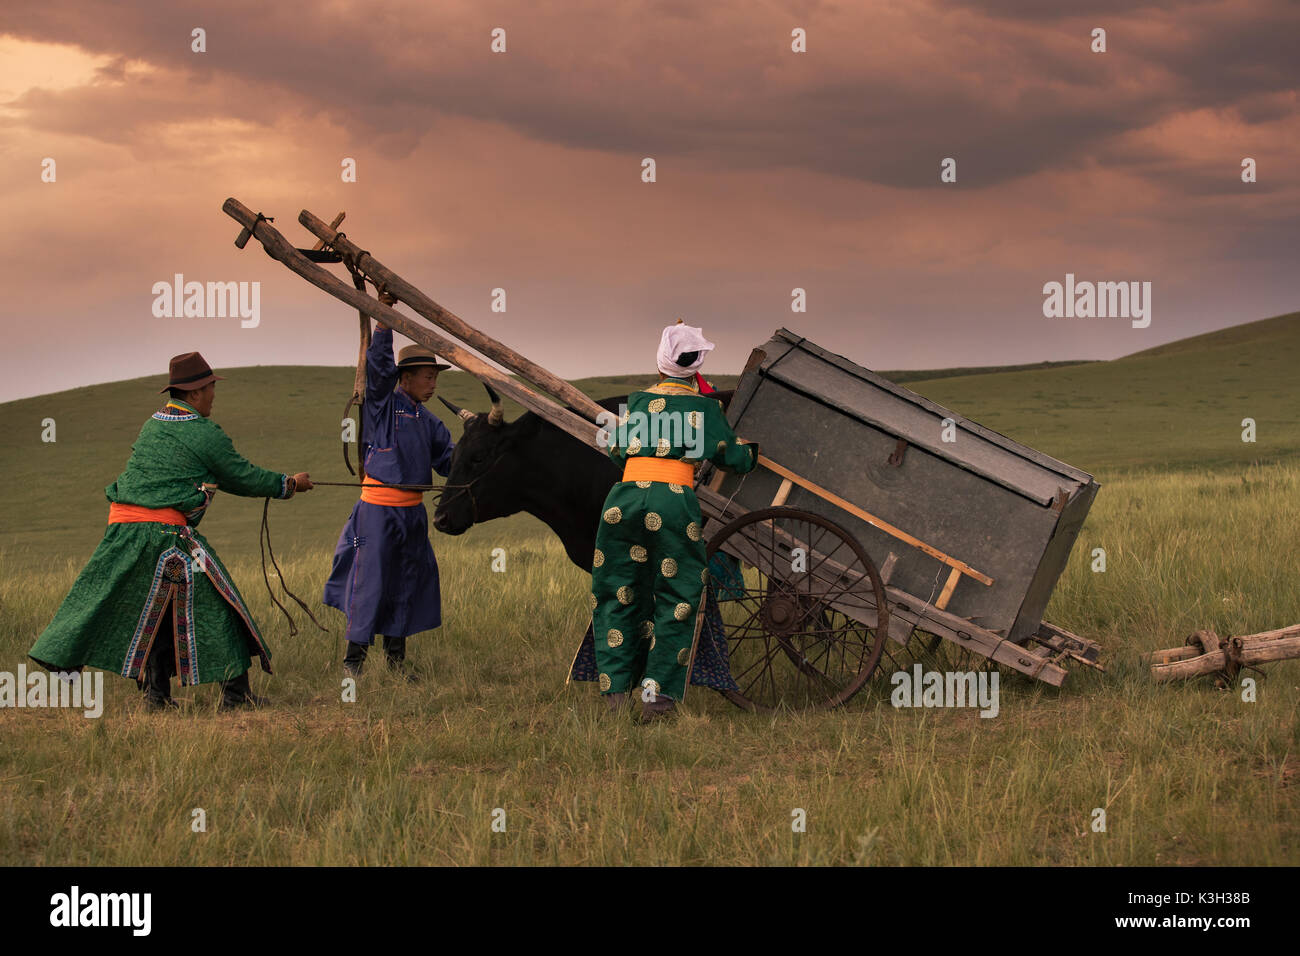 Inner Mongolia, China-July 31, 2017: Nomadic people of Mongolia prepare the cow cart in grassland. - Stock Image